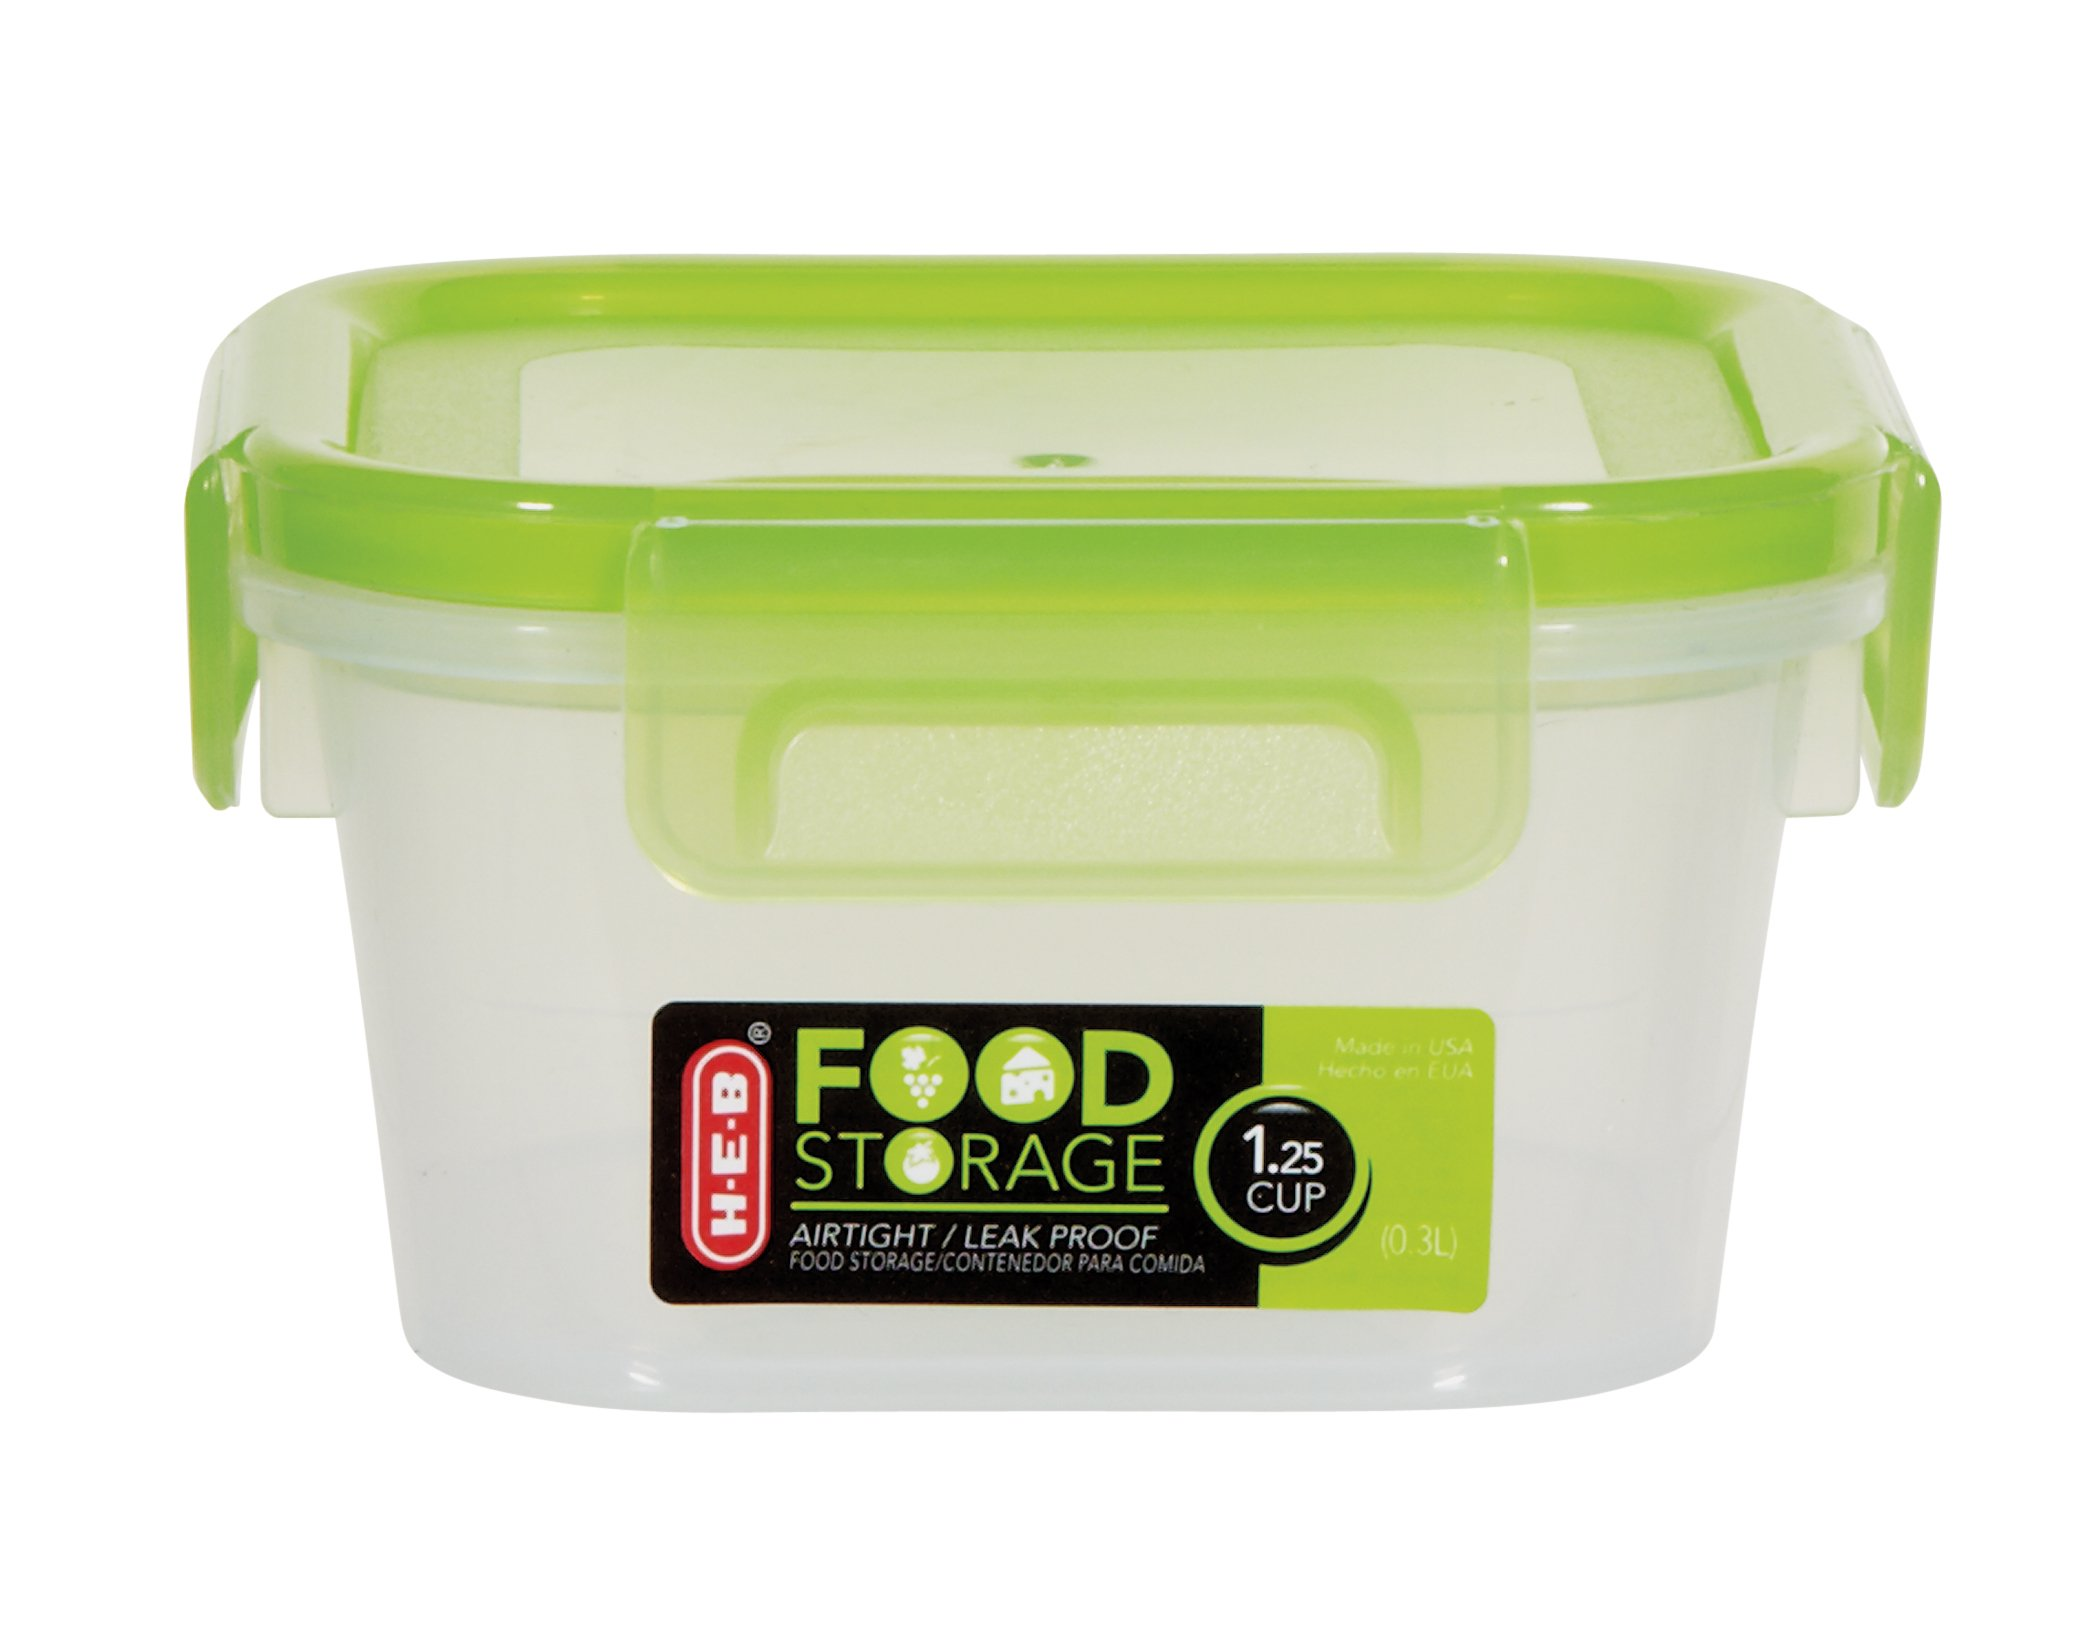 HEB 125 Cup Airtight Leak Proof Food Storage Container with Green